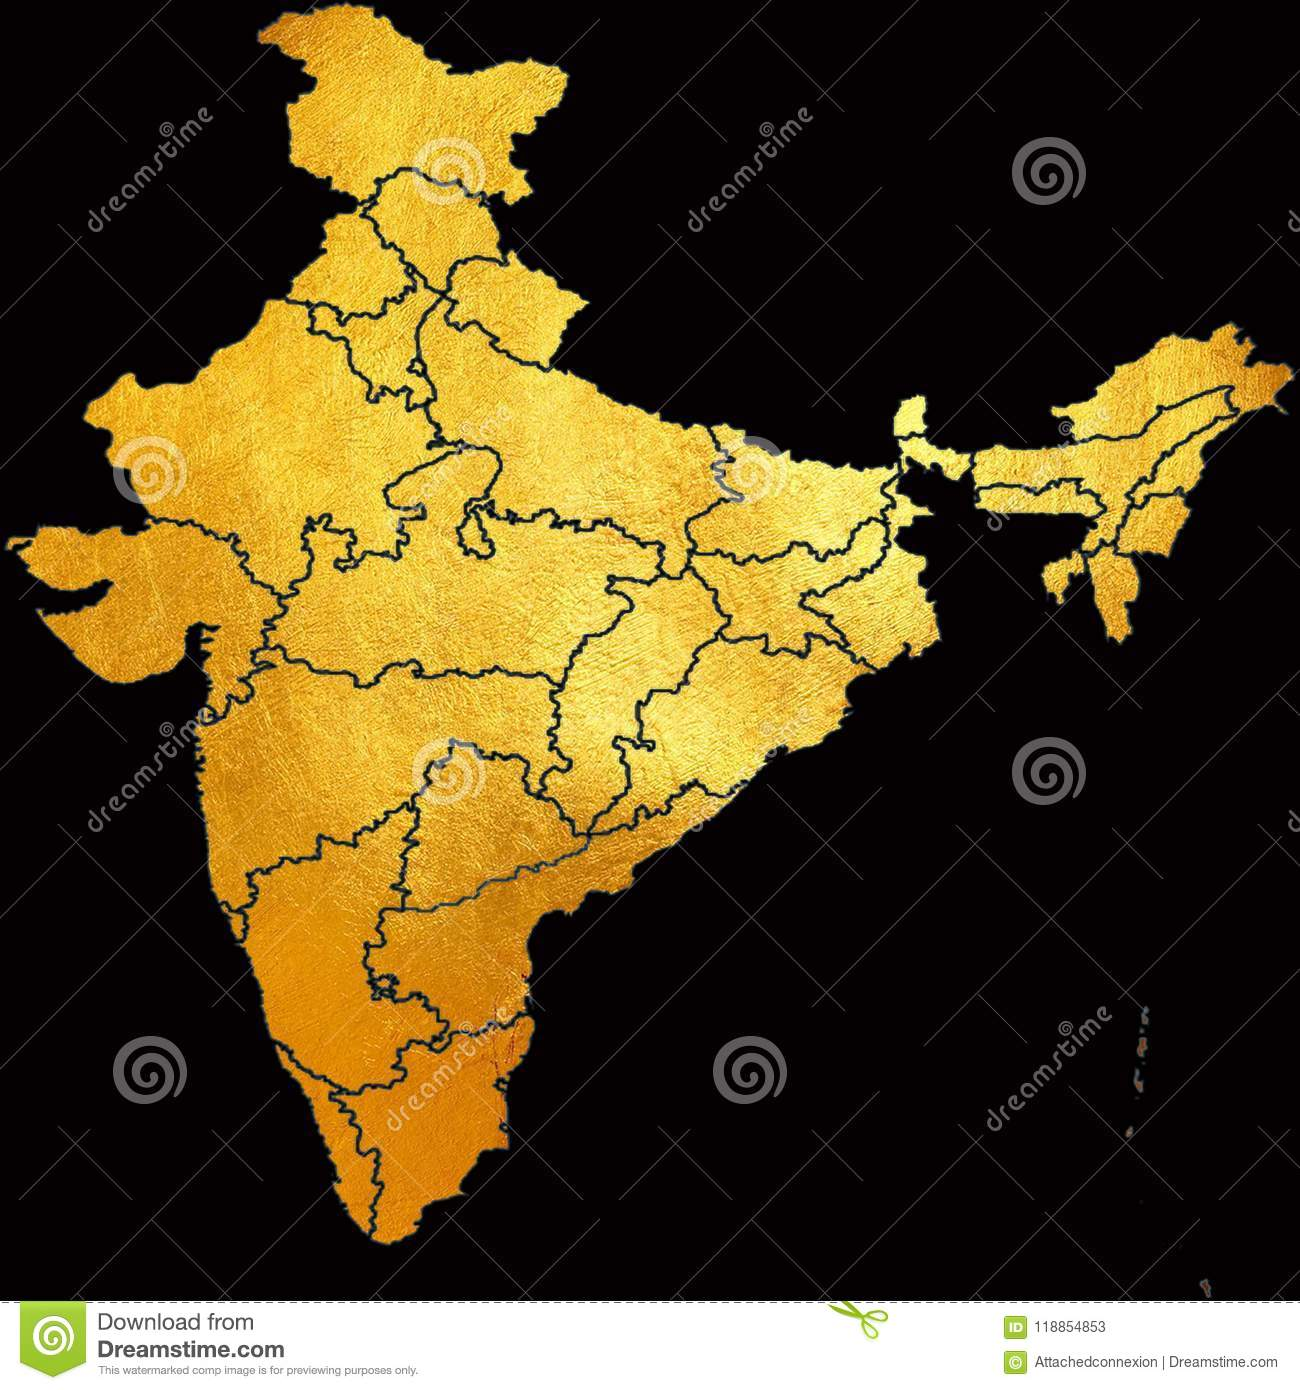 Map Of India, Asia With All States And Country Boundary In ... India States Map Asia on india bali map, india se, india map usa, india russia map, india on map, india yellow river map, india south asia, india continent map, india australia map, india heart map, india europe map, india region map, india population growth map, india in asia, mughal empire india map, tohoku japan earthquake 2011 map, india mongol empire map, india iran map, india and surrounding country map, africa map,